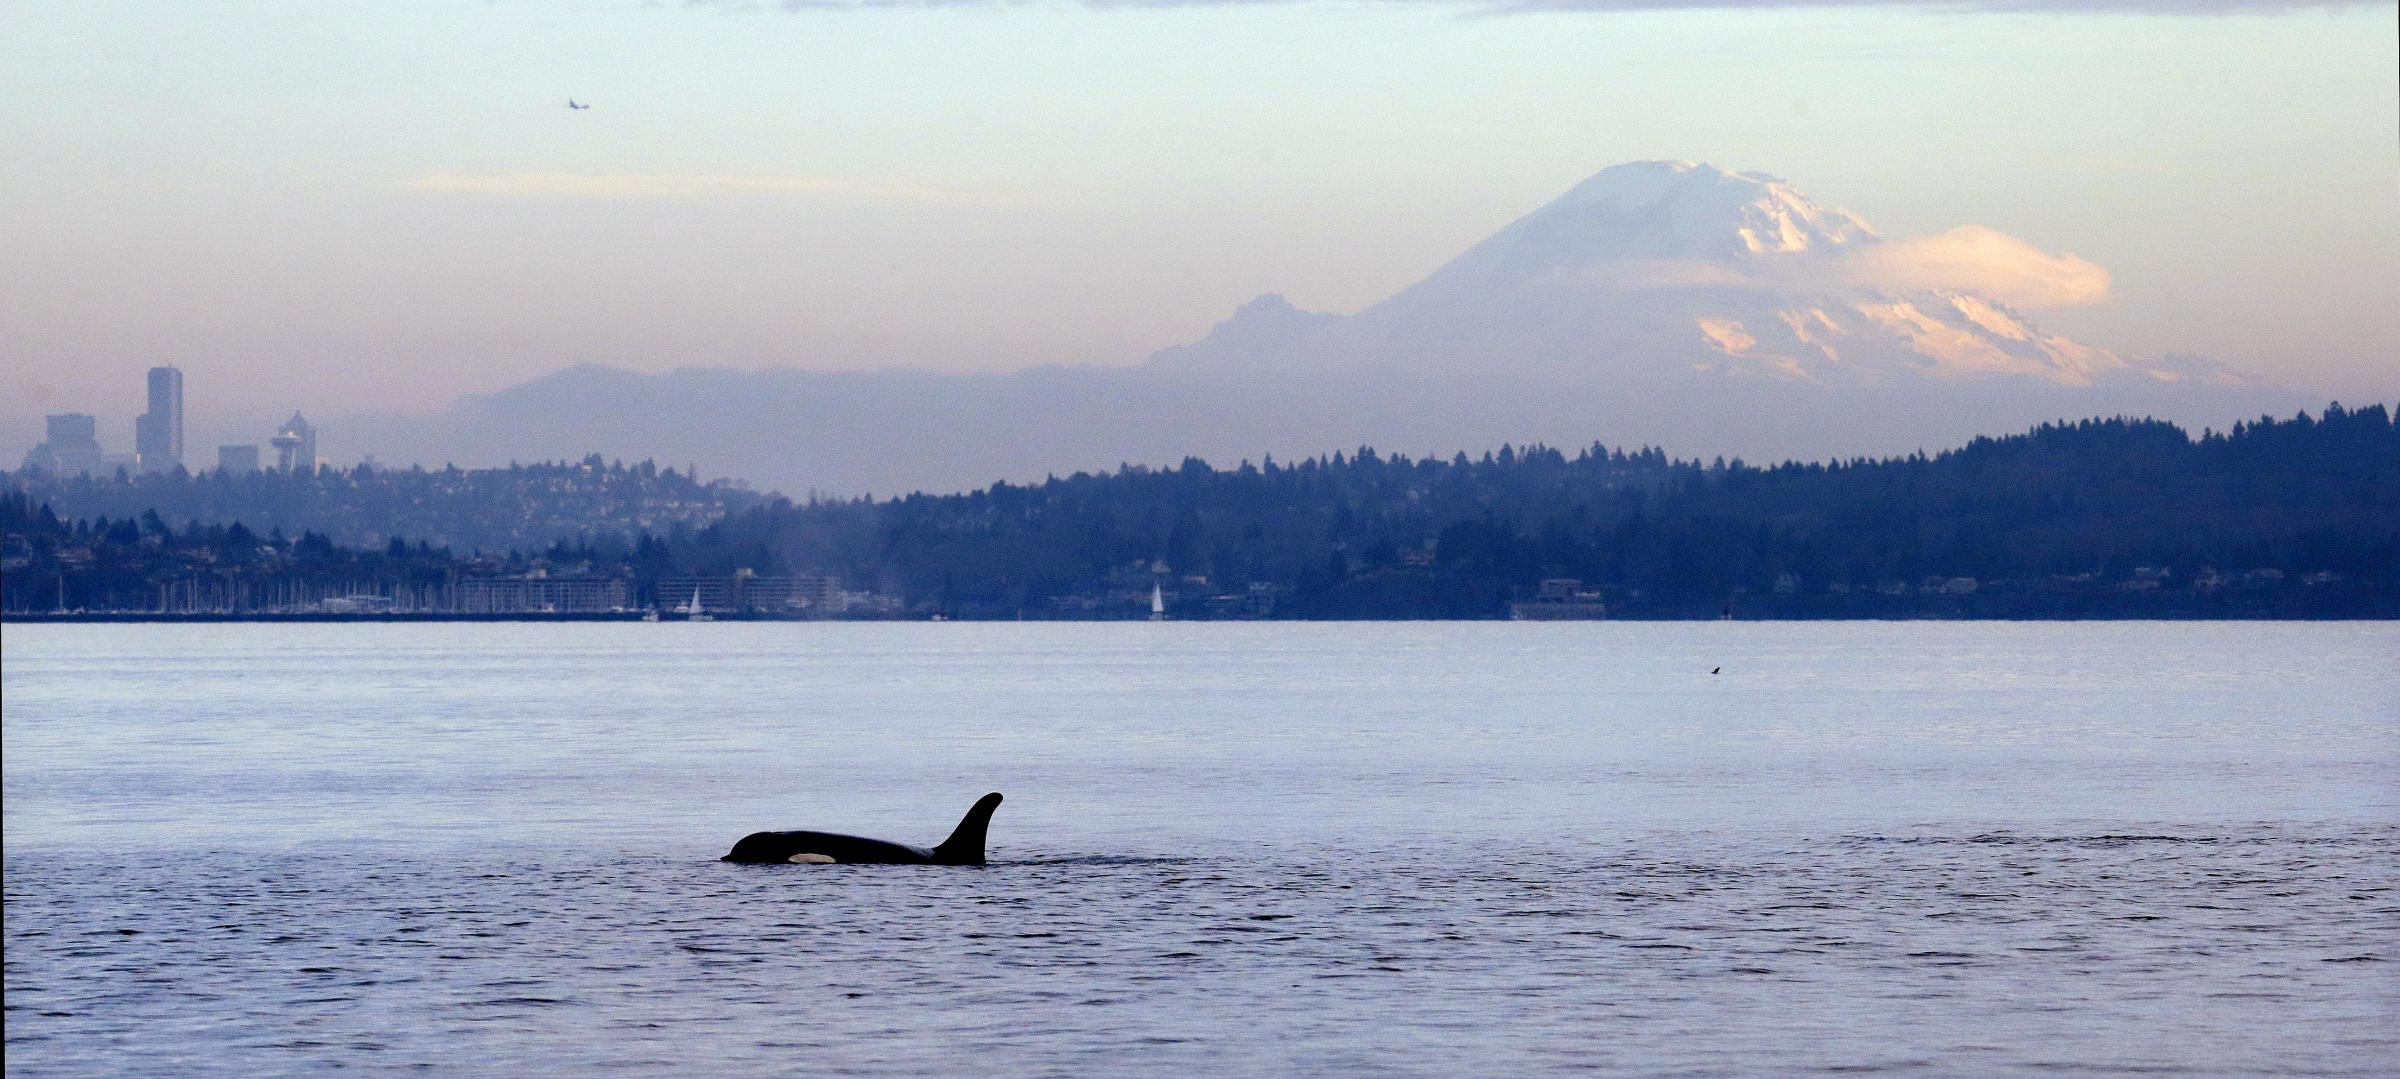 How FishViews is Helping With Puget Sound Conservation